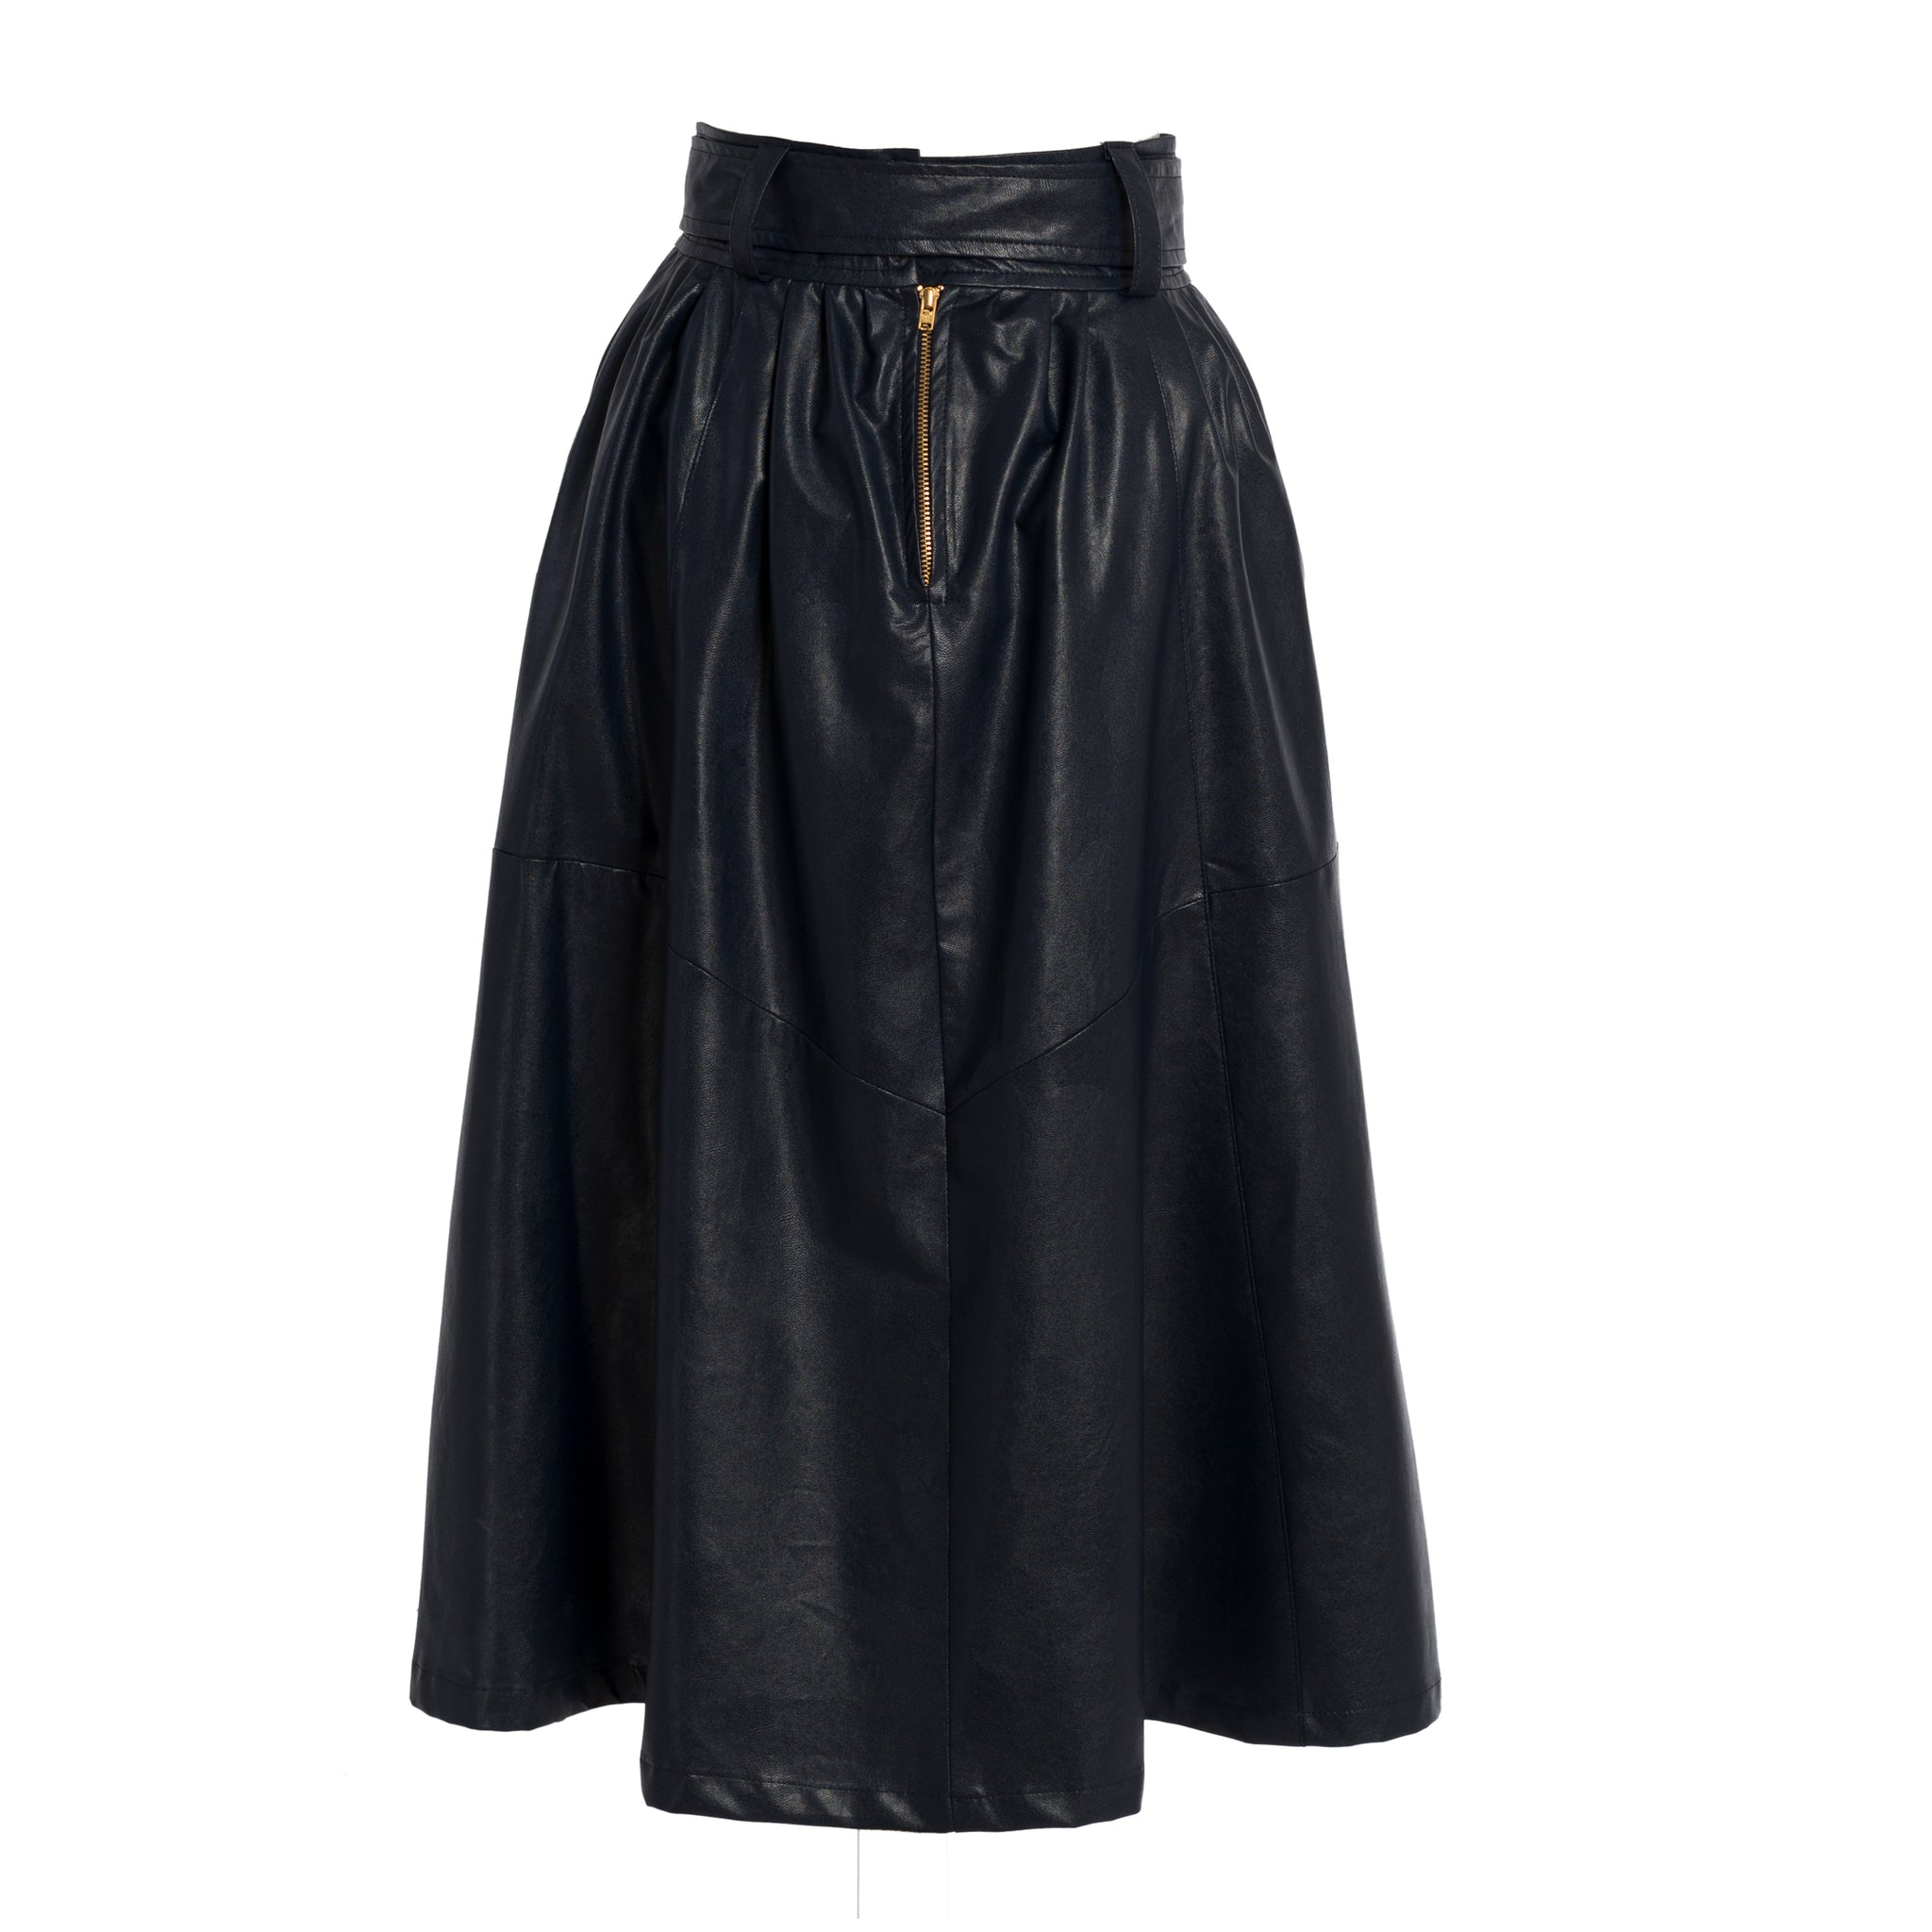 HUNSLET Midnight Blue Vegan Leather Midi Skirt